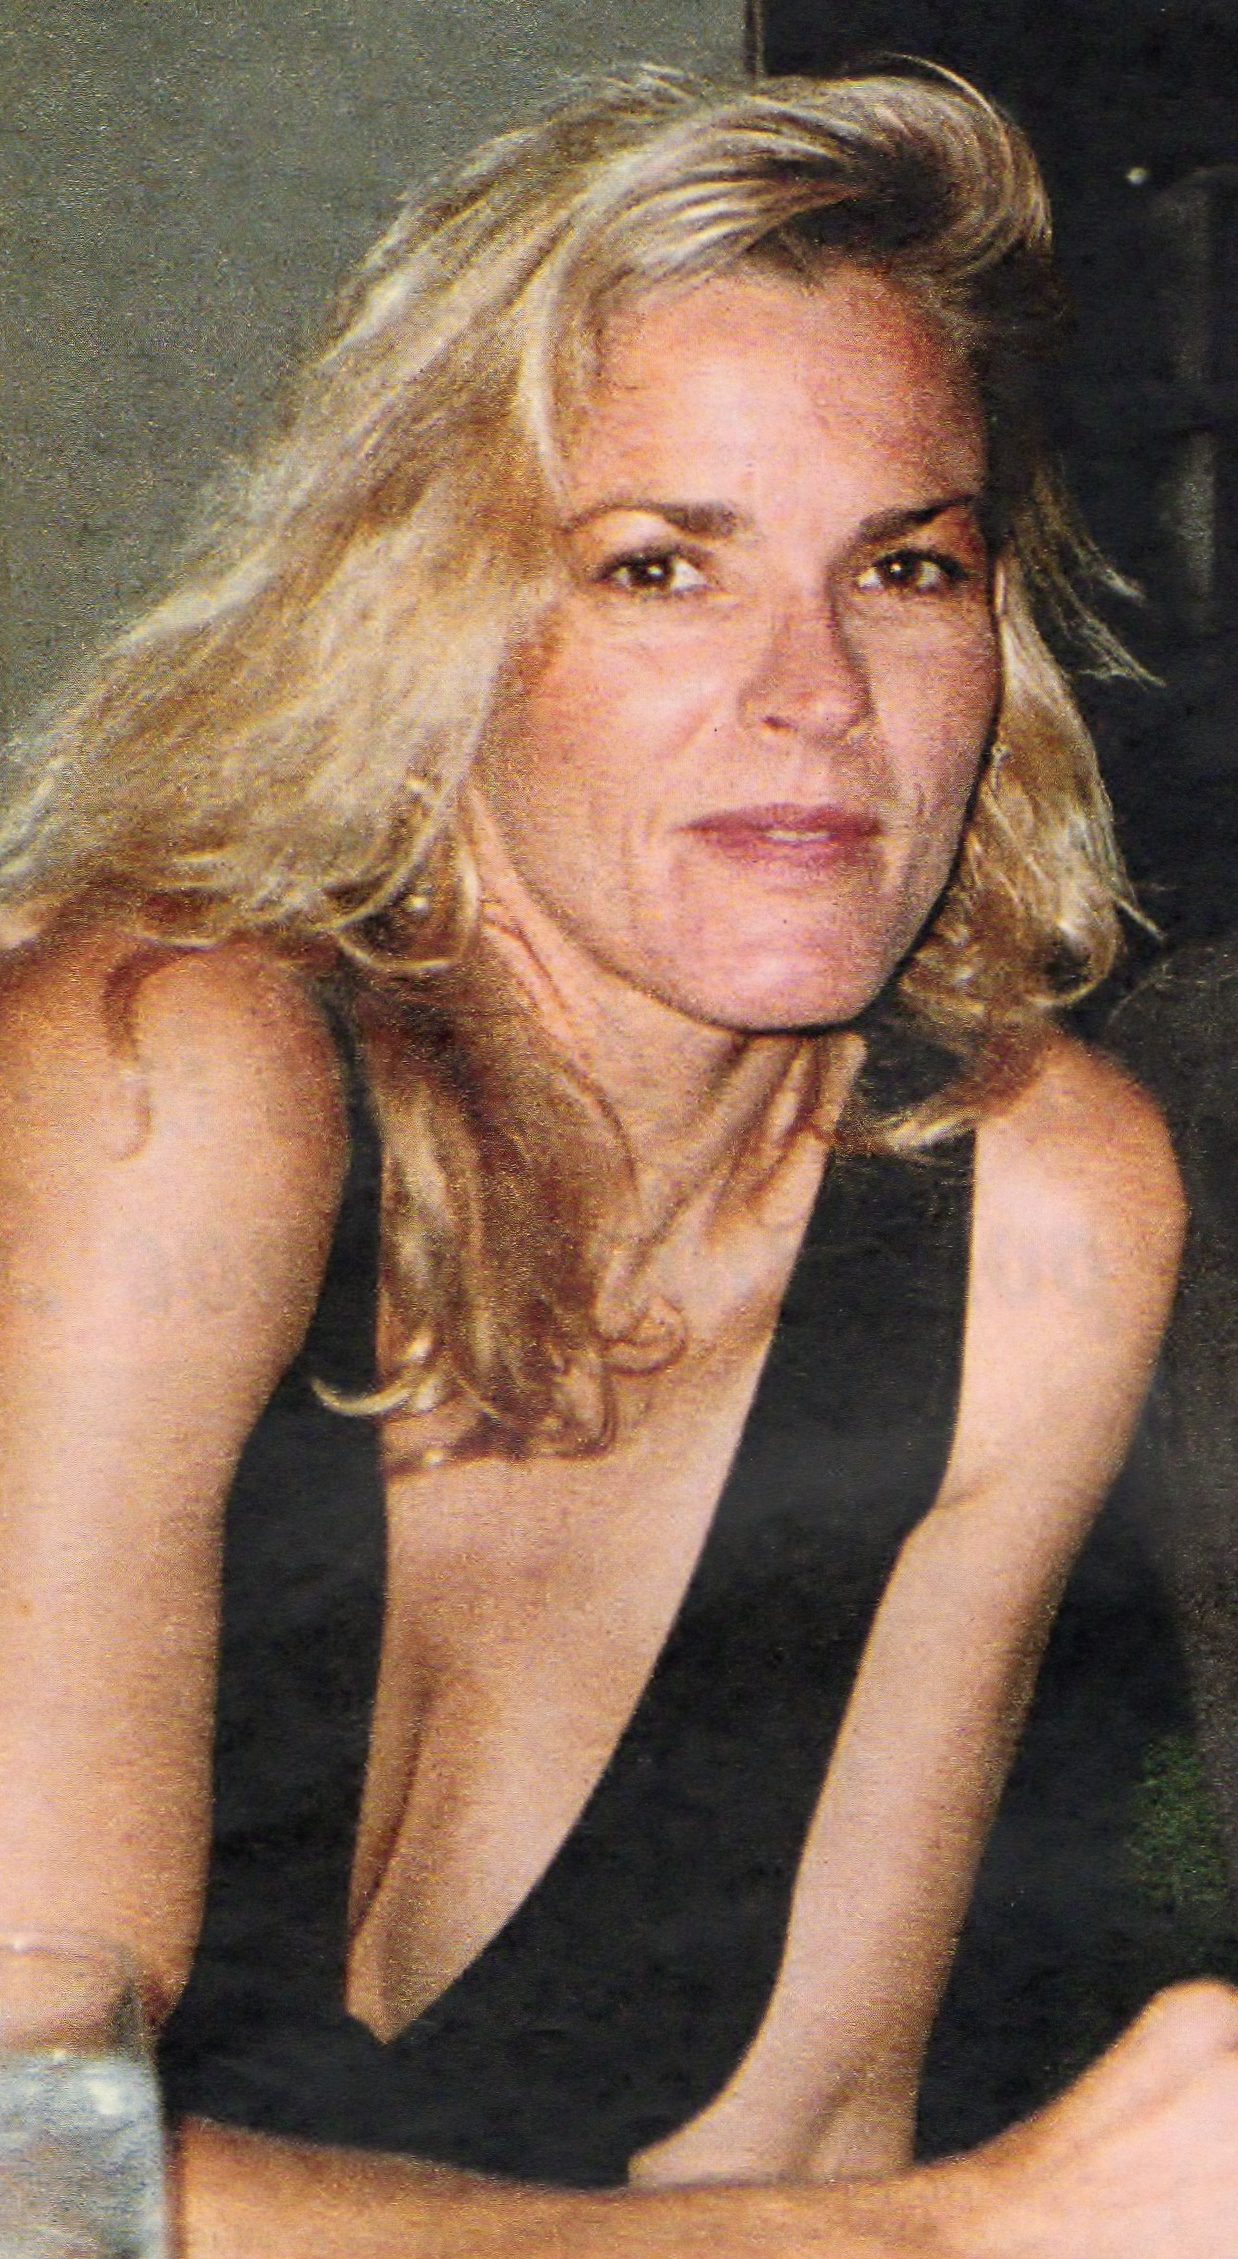 Final, sorry, Nicole brown simpson nudes opinion